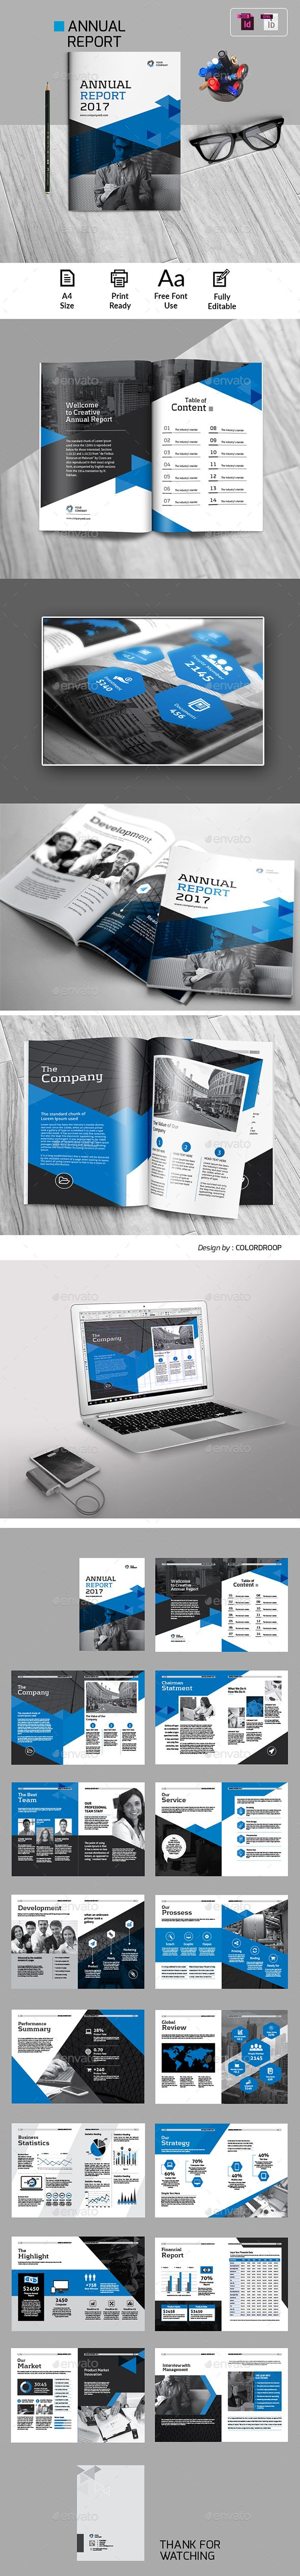 Annual Report - Corporate Brochures Download here : https://graphicriver.net/item/annual-report/19694440?s_rank=30&ref=Al-fatih